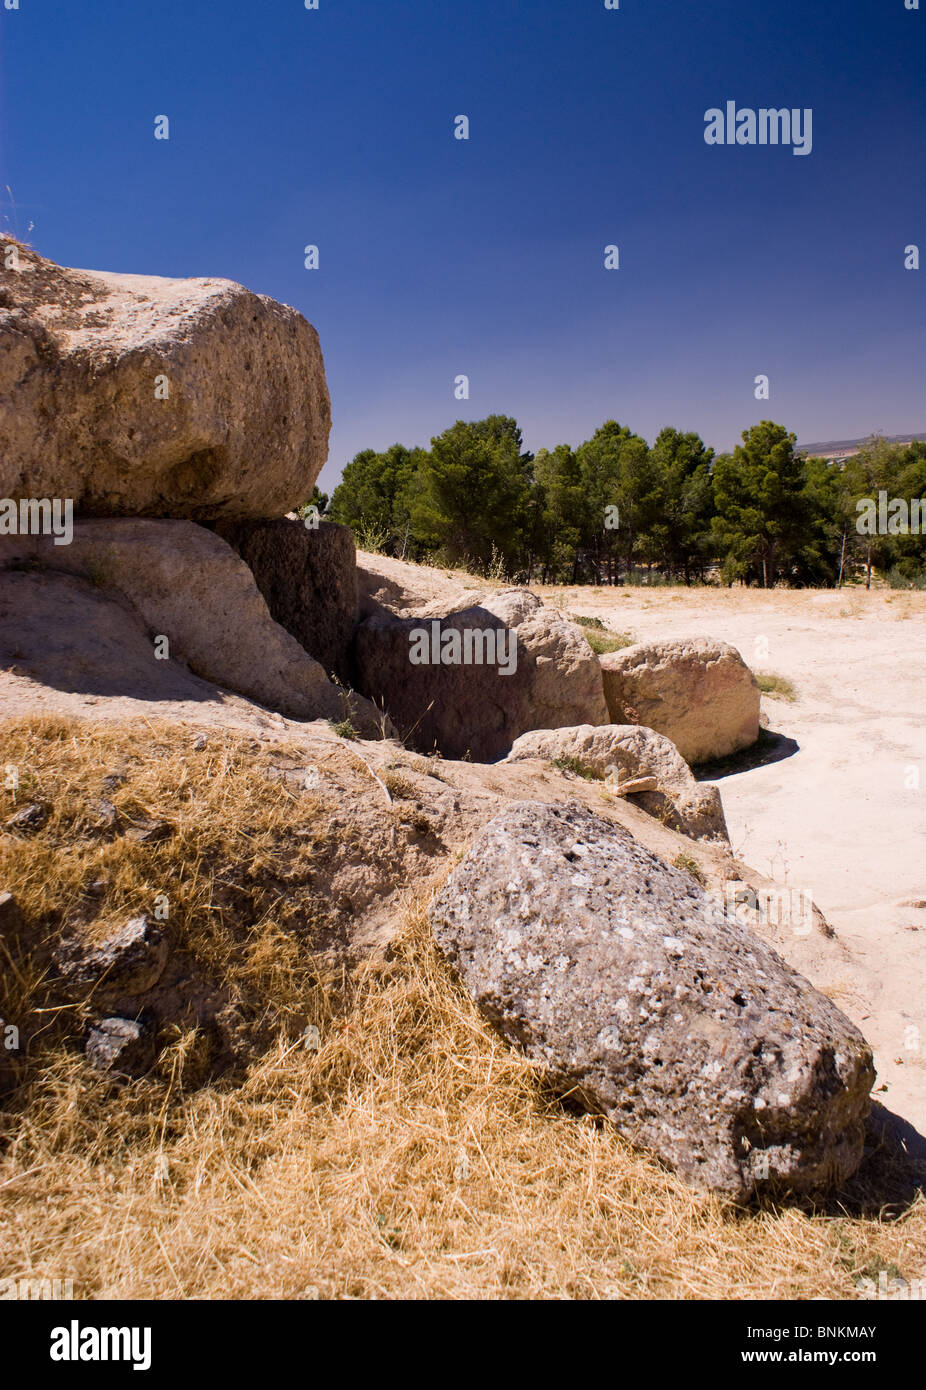 VIEWS OF THE DOLMENS ANTEQUERA SPAIN Stock Photo